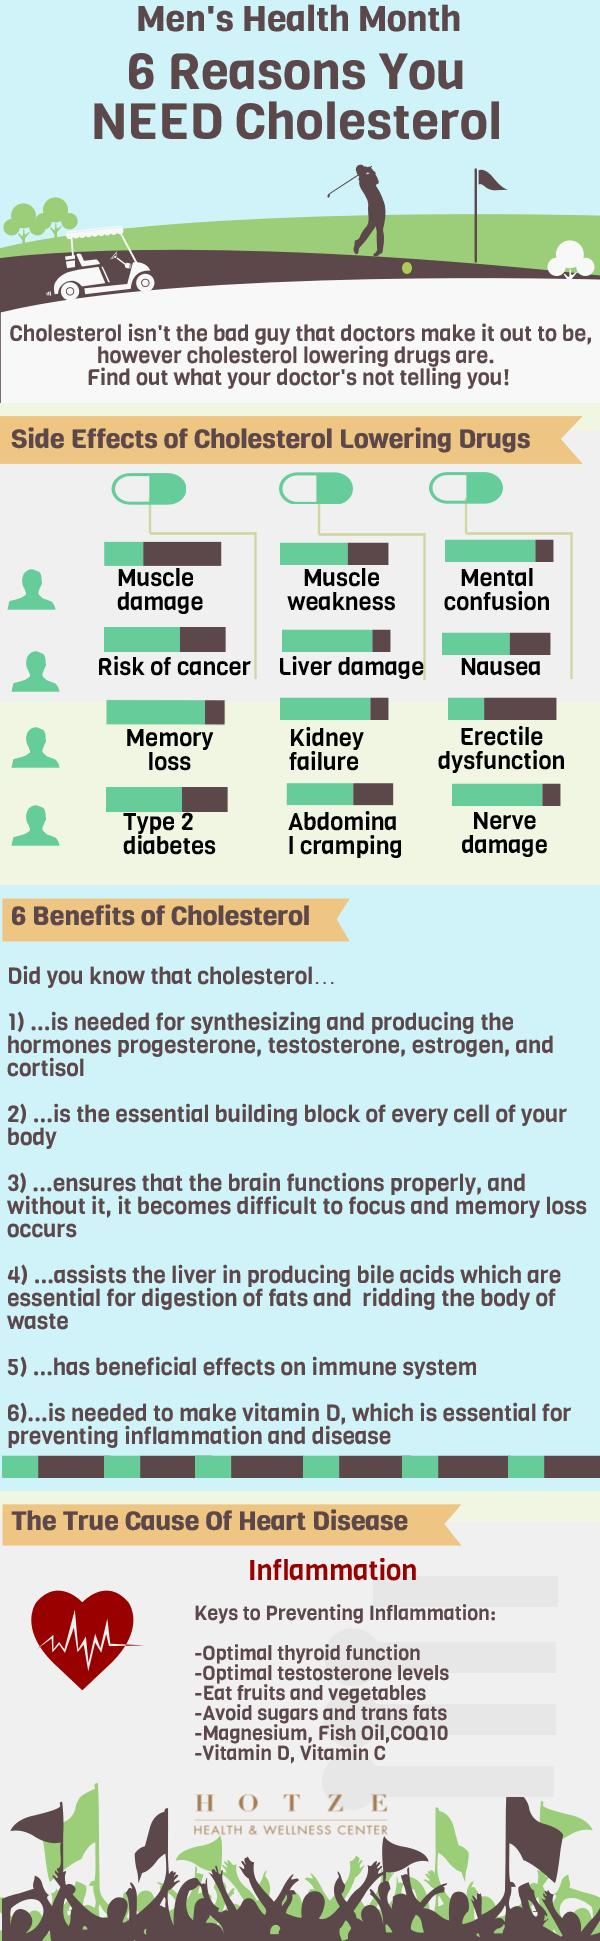 6 Reasons You Need Cholesterol